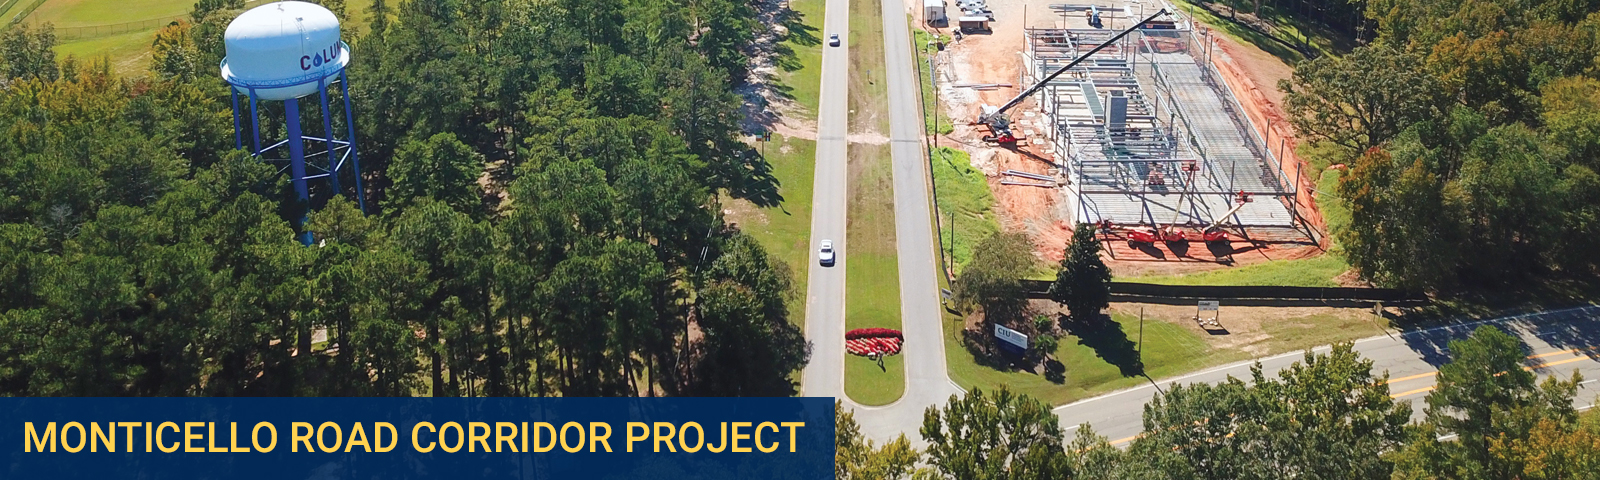 Monticello Road Corridor Project